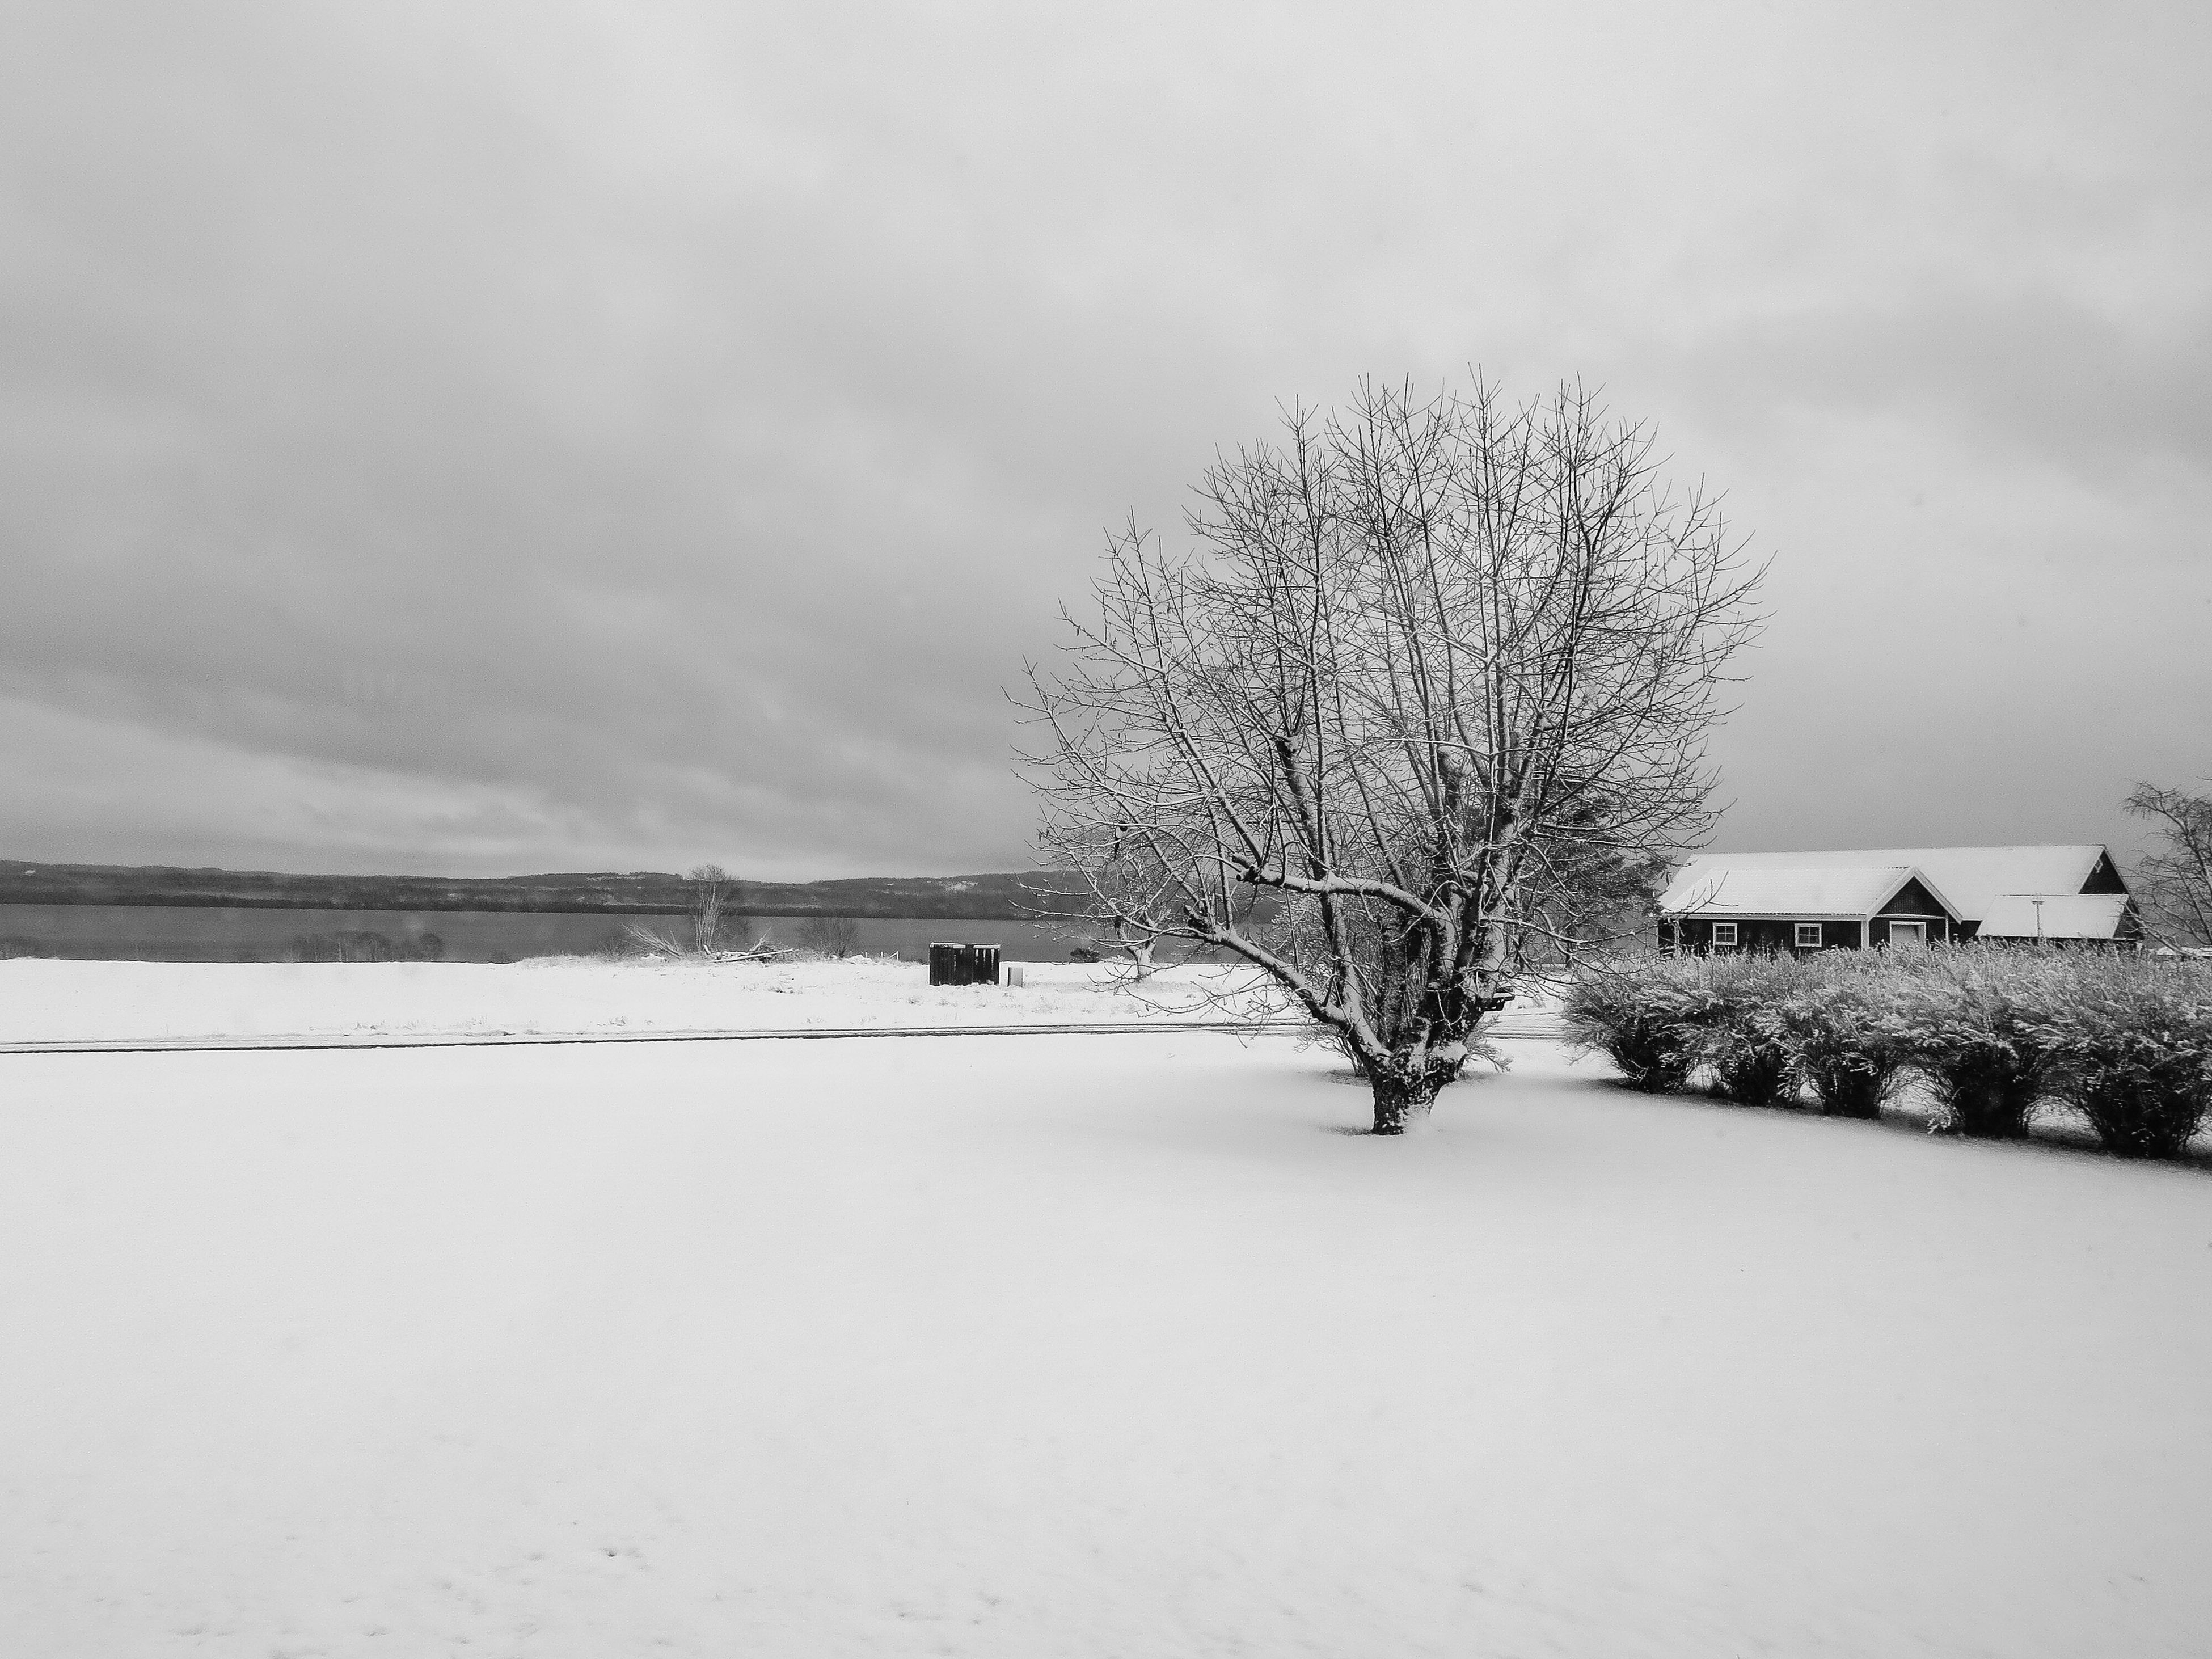 sky, tree, built structure, field, weather, architecture, landscape, nature, winter, cloud - sky, tranquility, snow, building exterior, cold temperature, growth, tranquil scene, bare tree, day, overcast, house